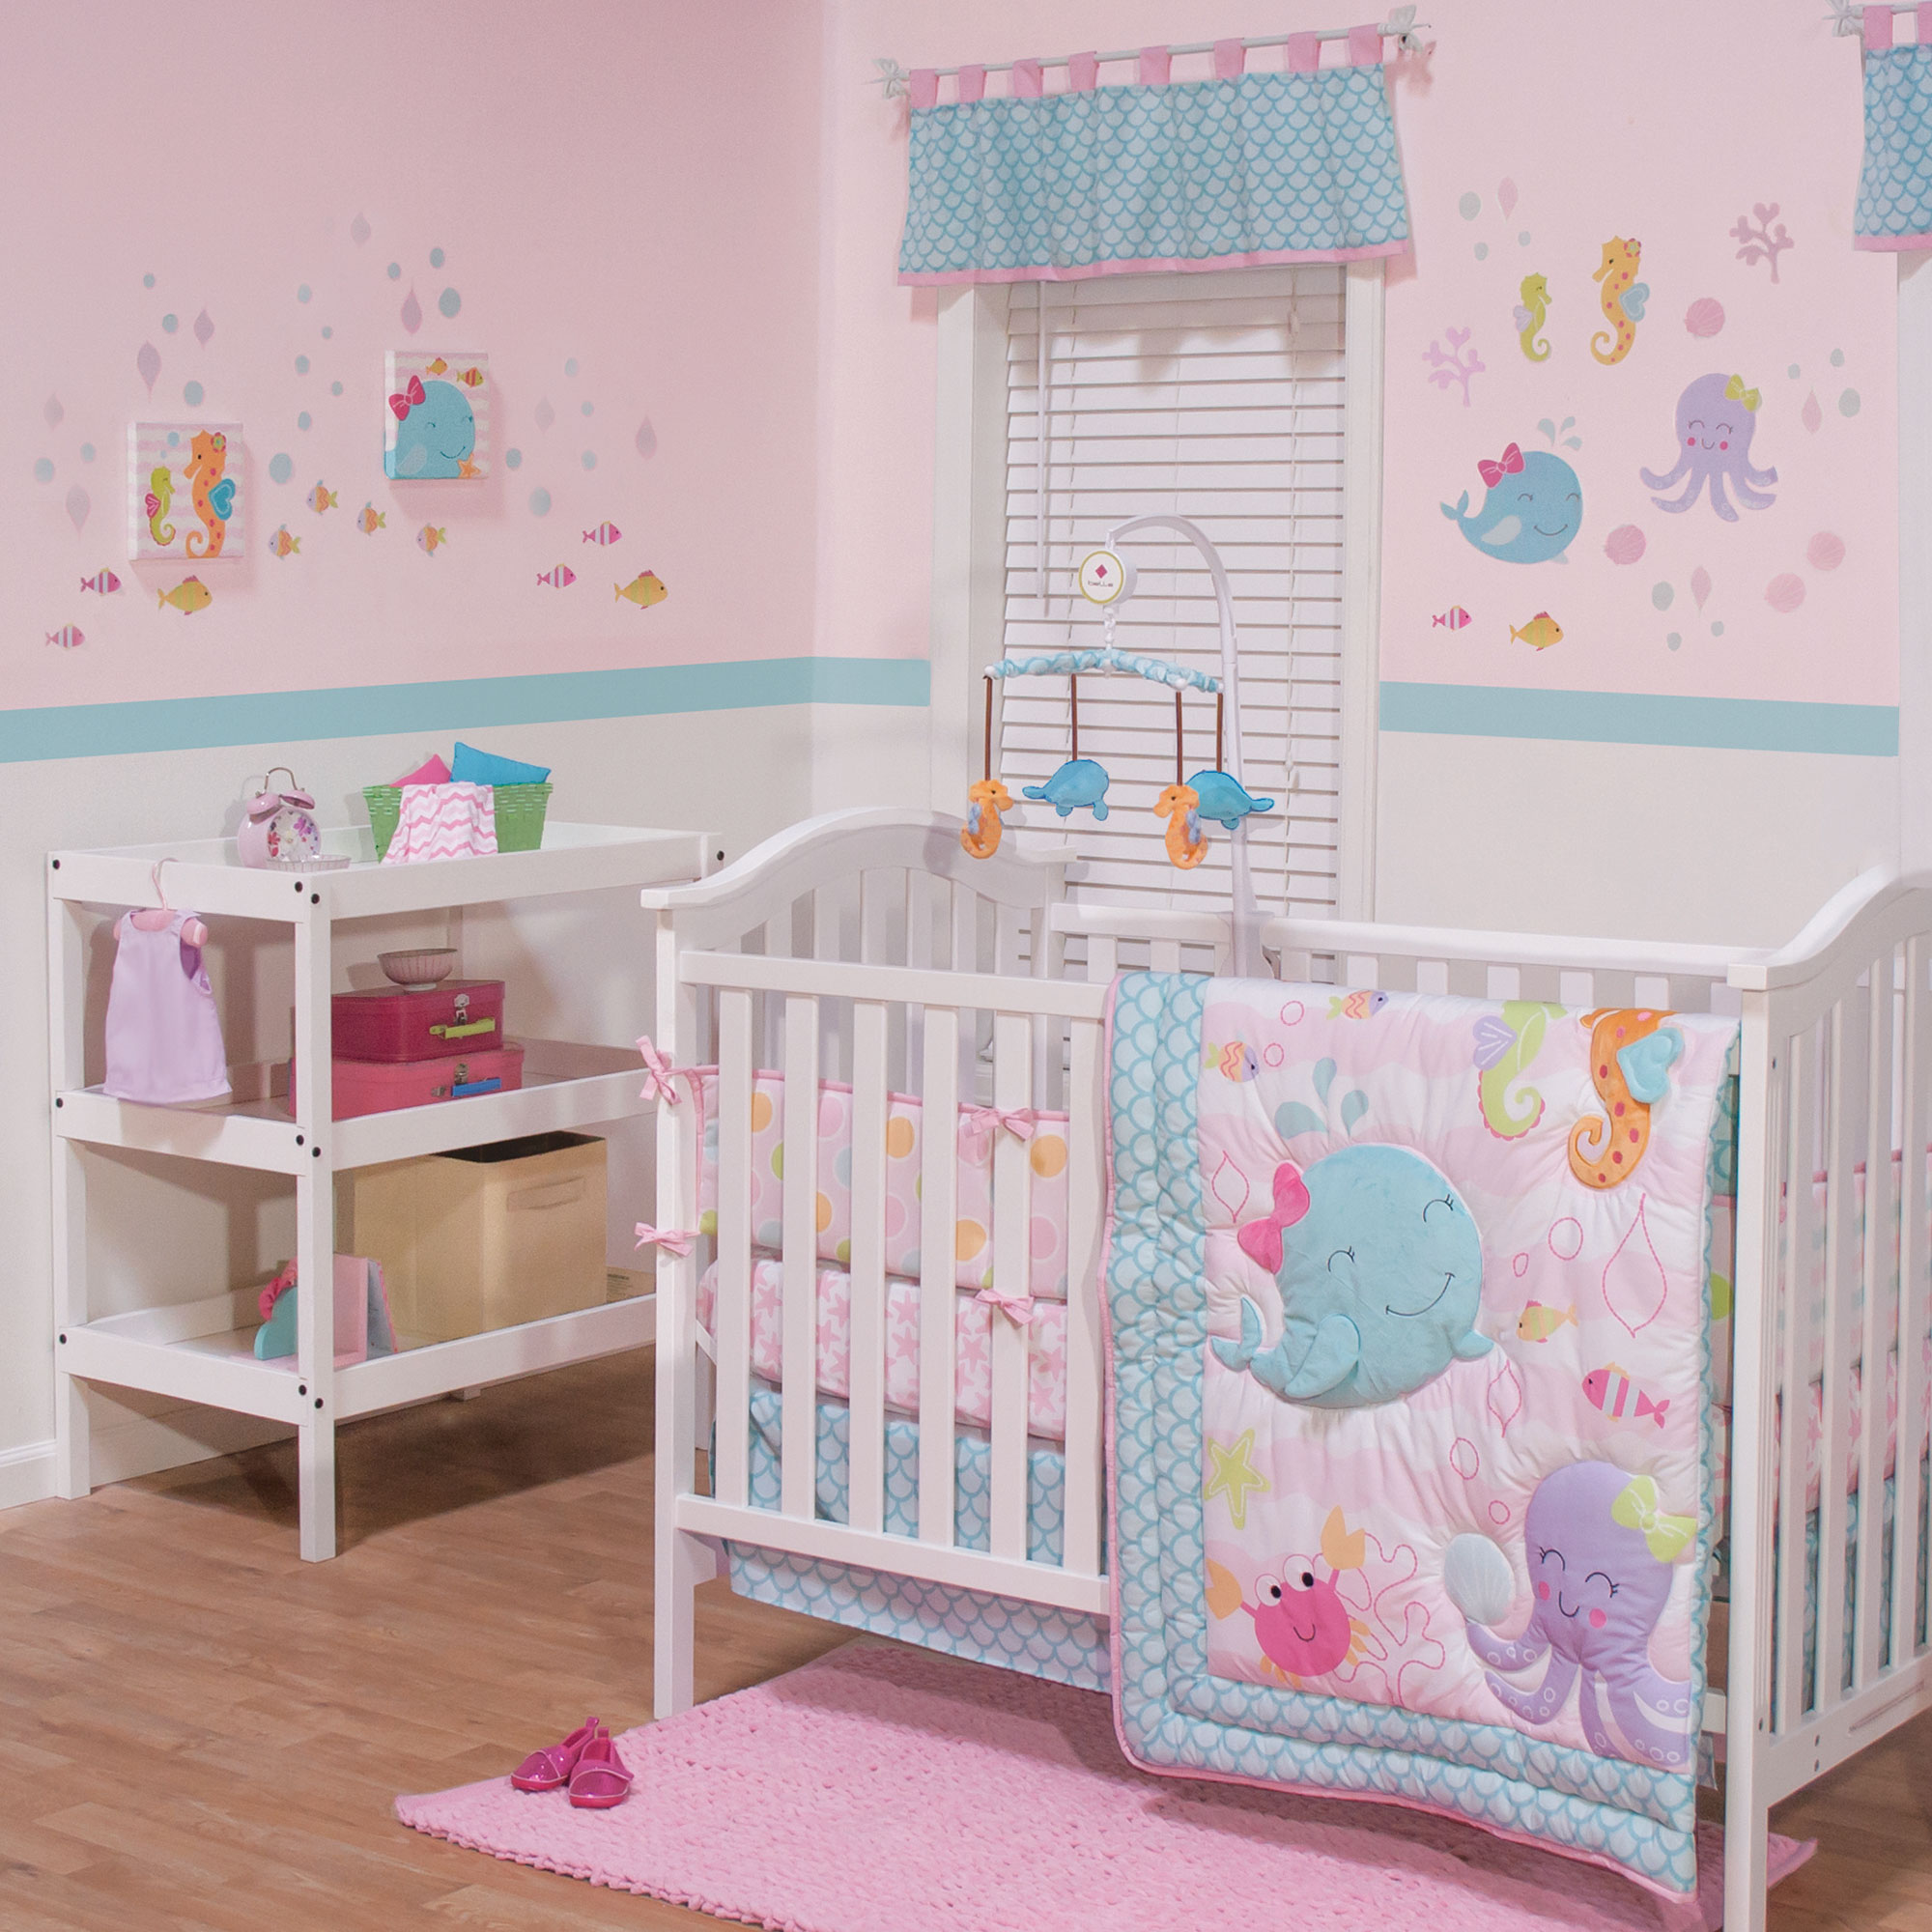 Baby cribs sets - Belle Baby Girl Crib Bedding Set Pink And Aqua Sealife Theme Sea Sweeties 4 Piece Set With Bumper Walmart Com